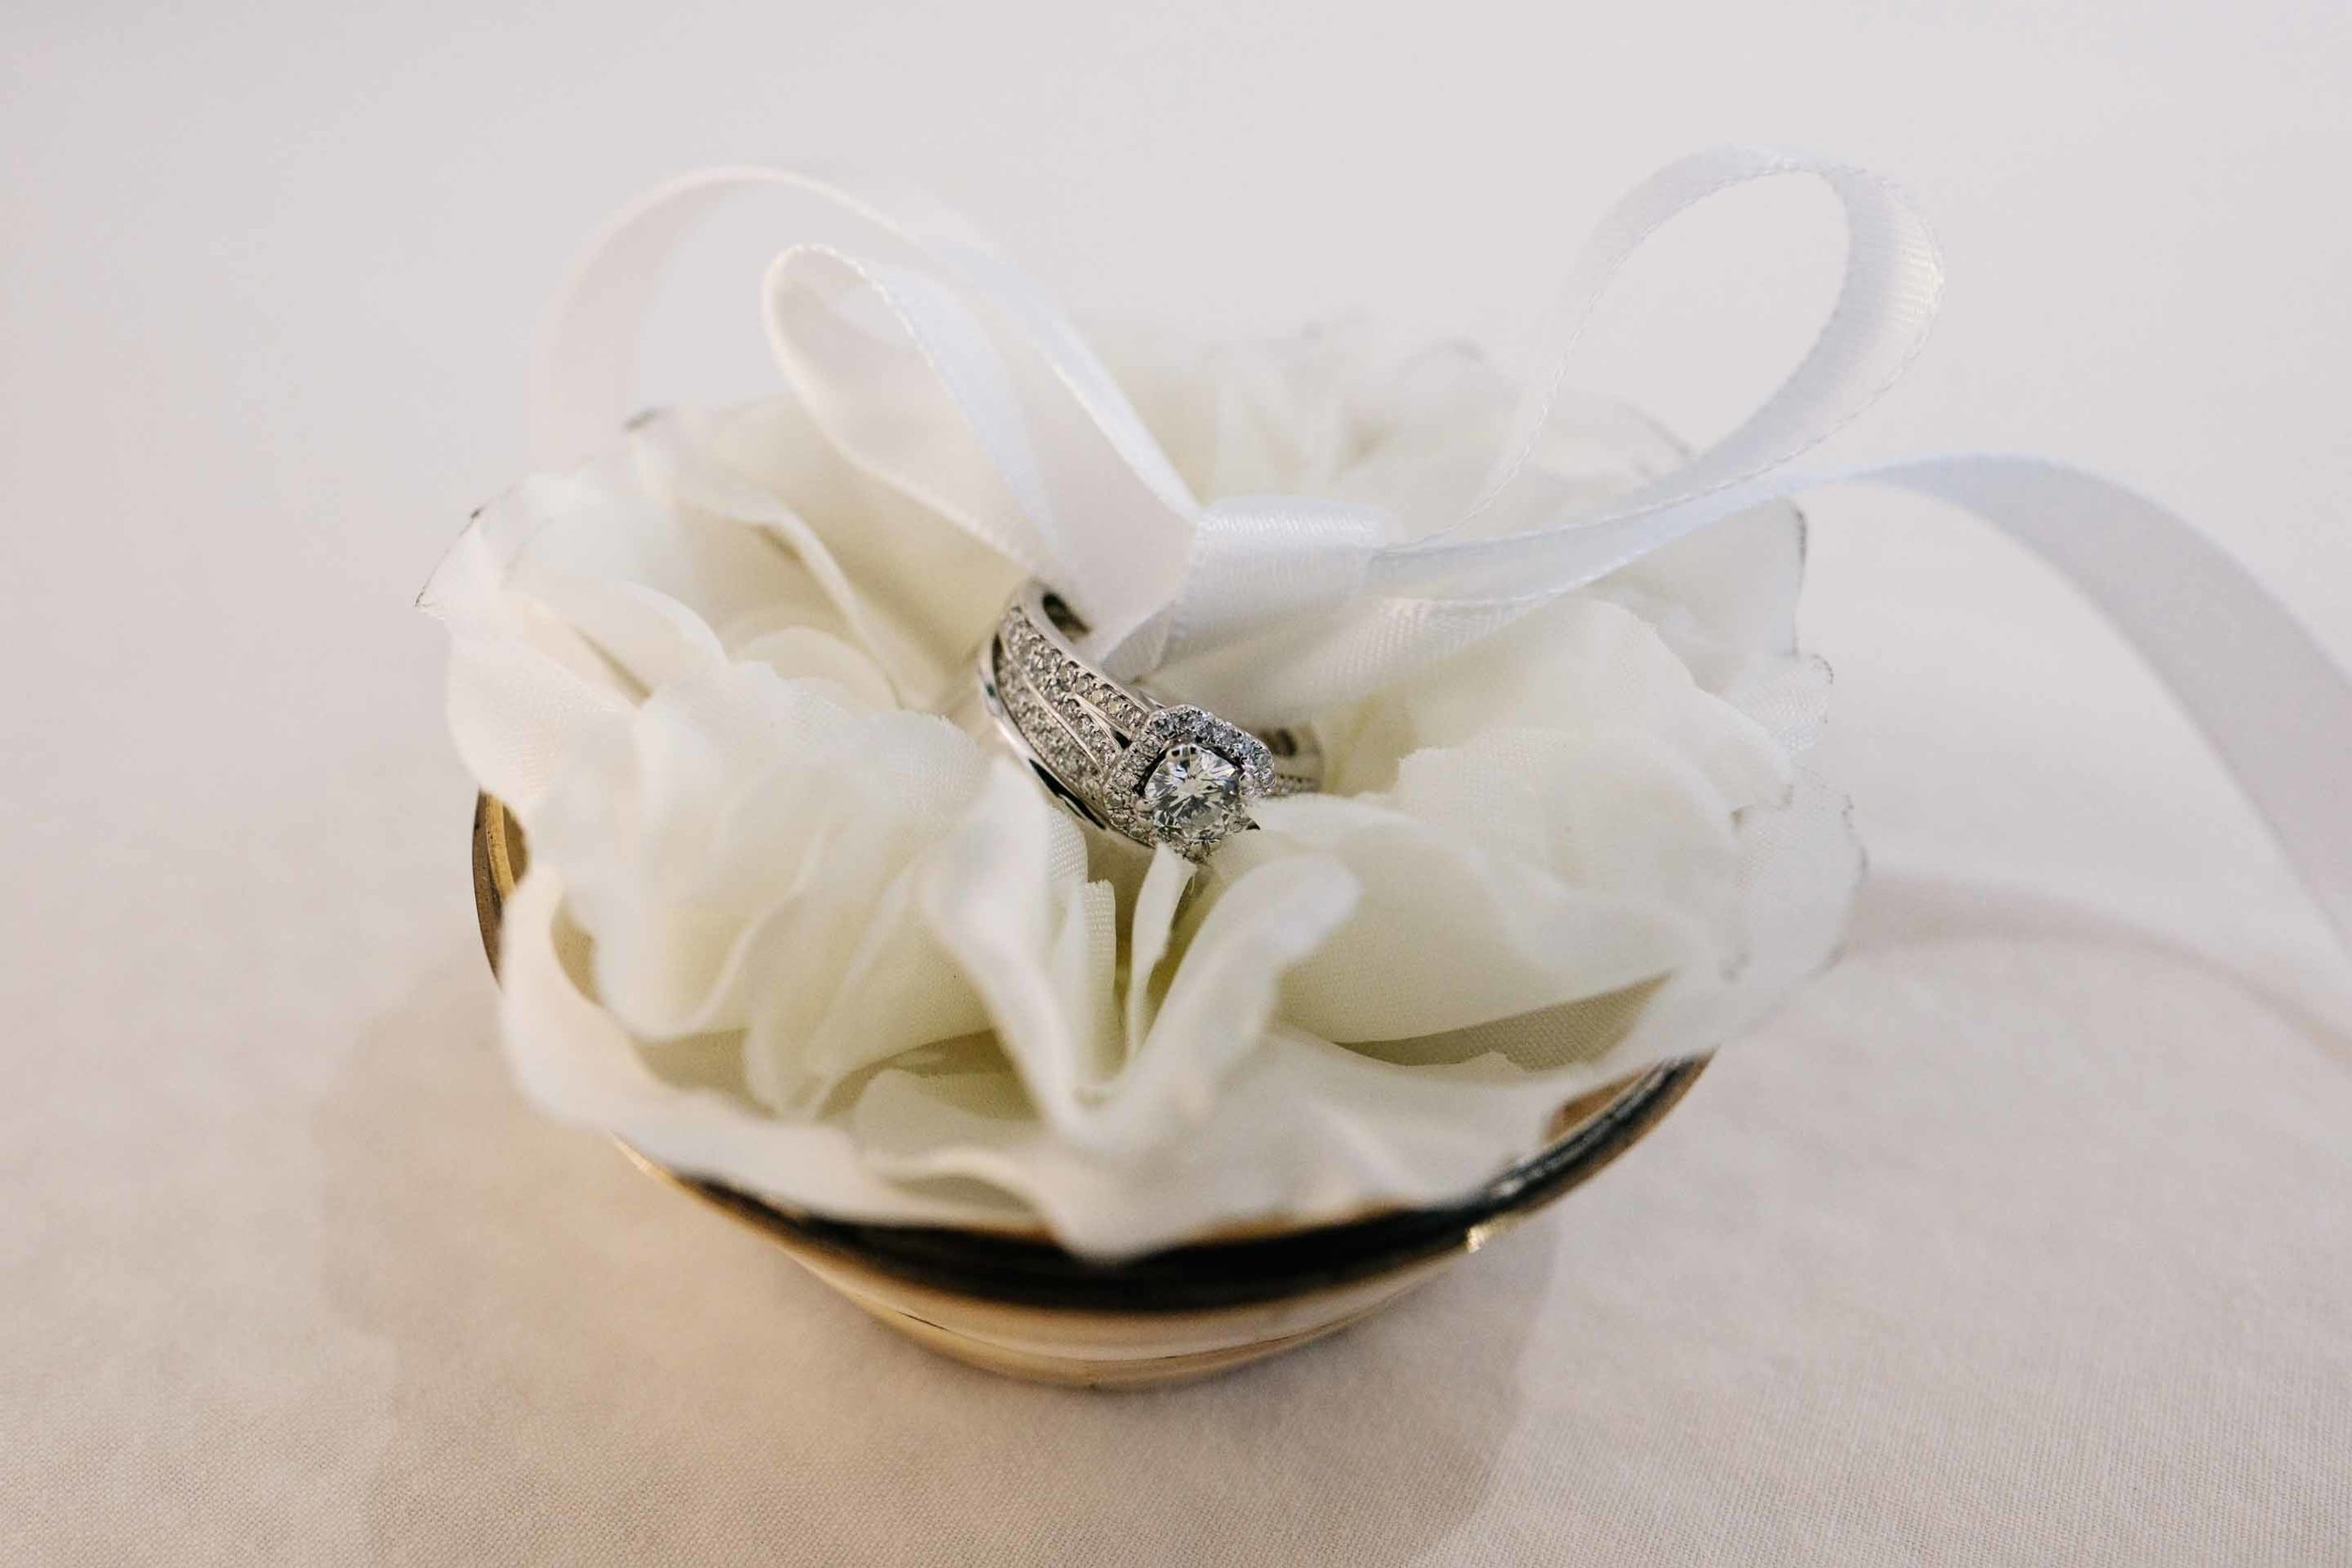 Wedding rings tied together with ribbon in a customised ring holder